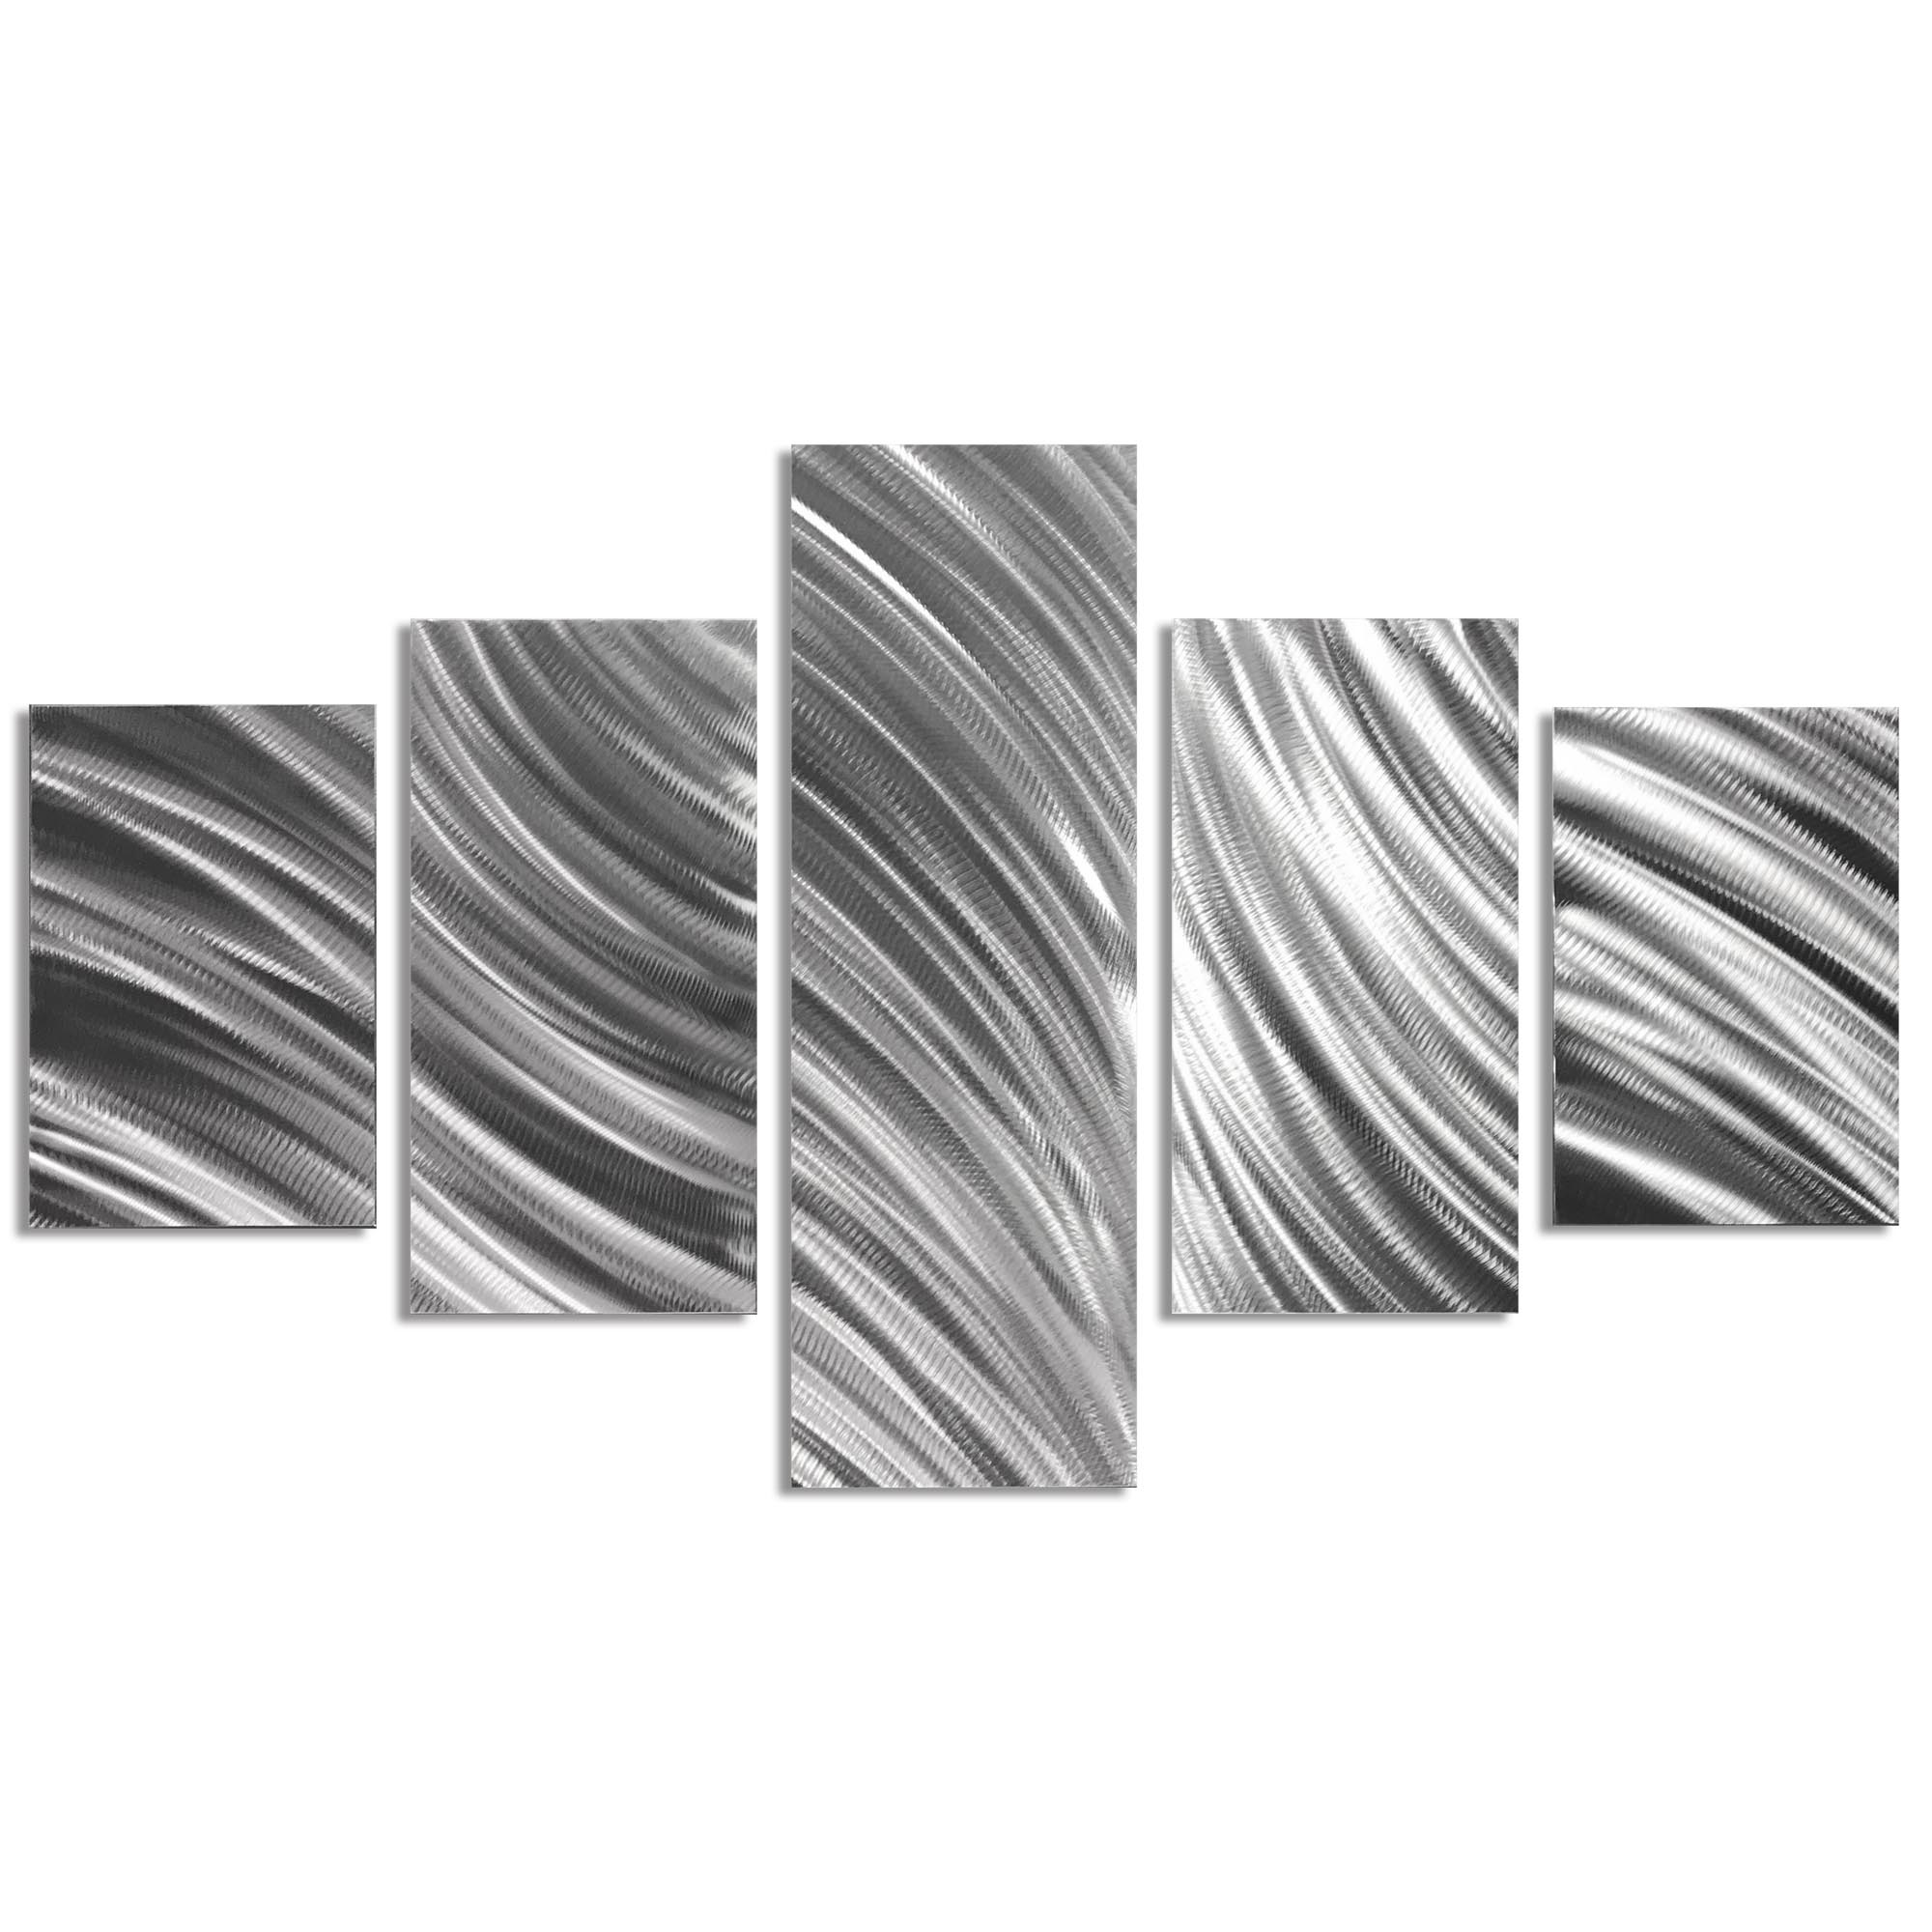 Columnar Flow 64x36in. Natural Aluminum Abstract Decor